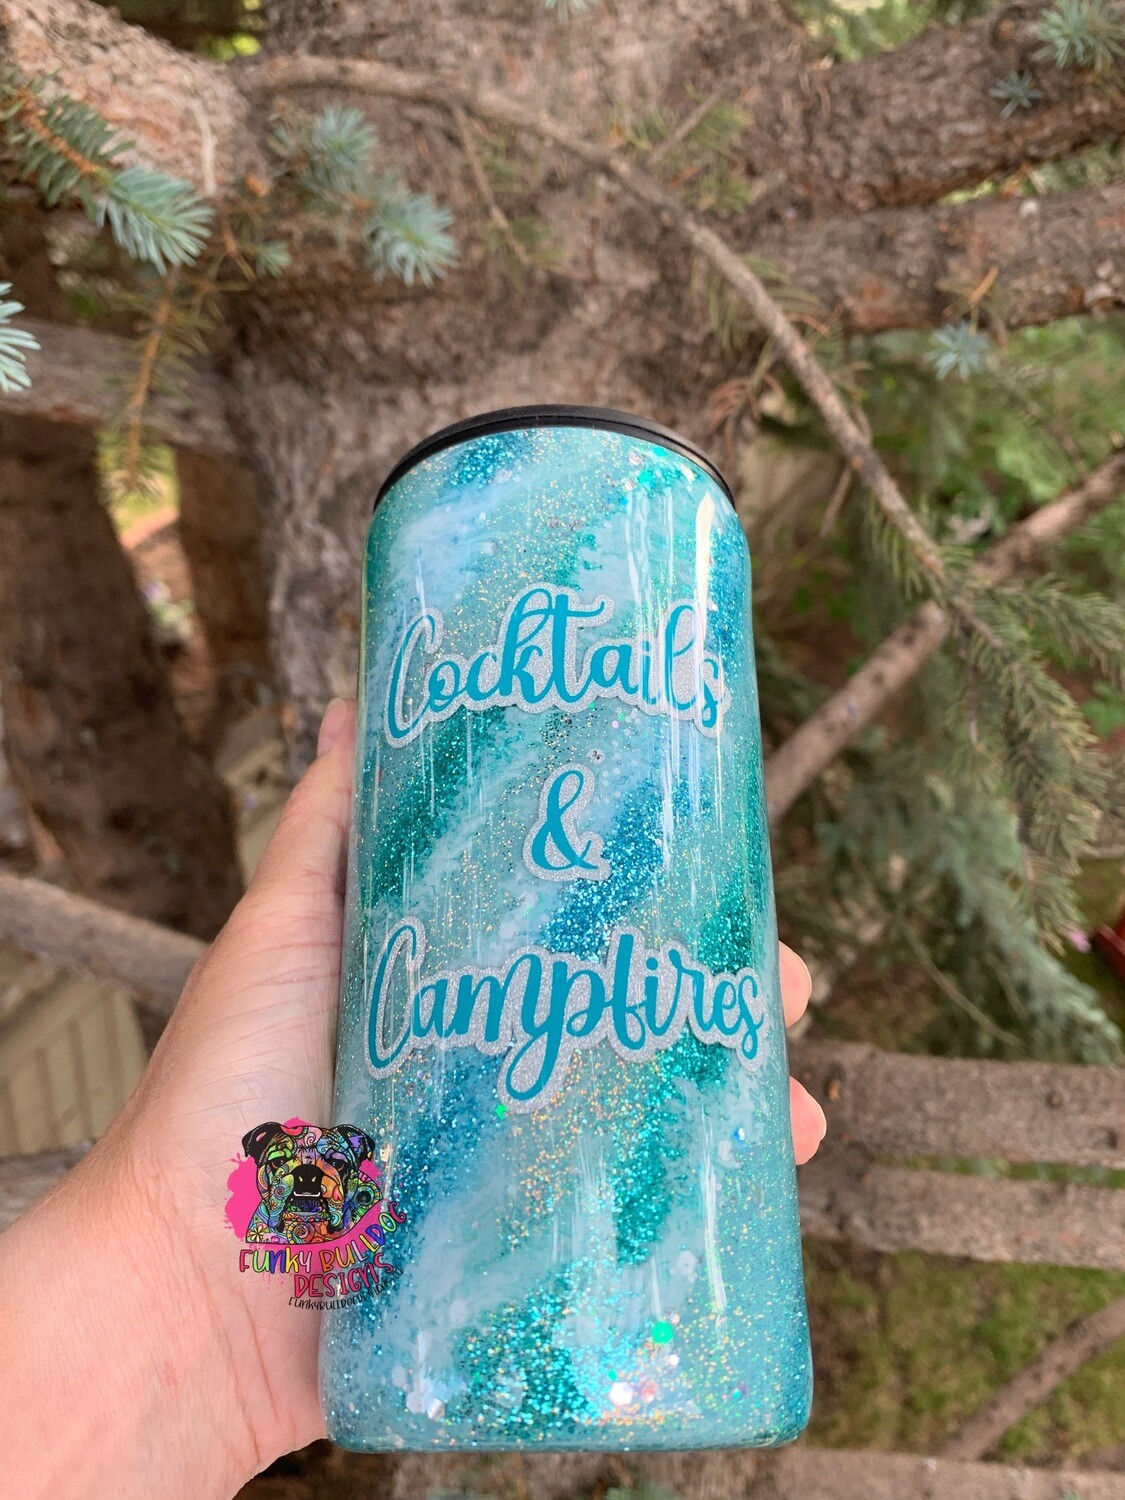 15oz glitter stainless steel DUAL lid tumbler - cocktails & campfires